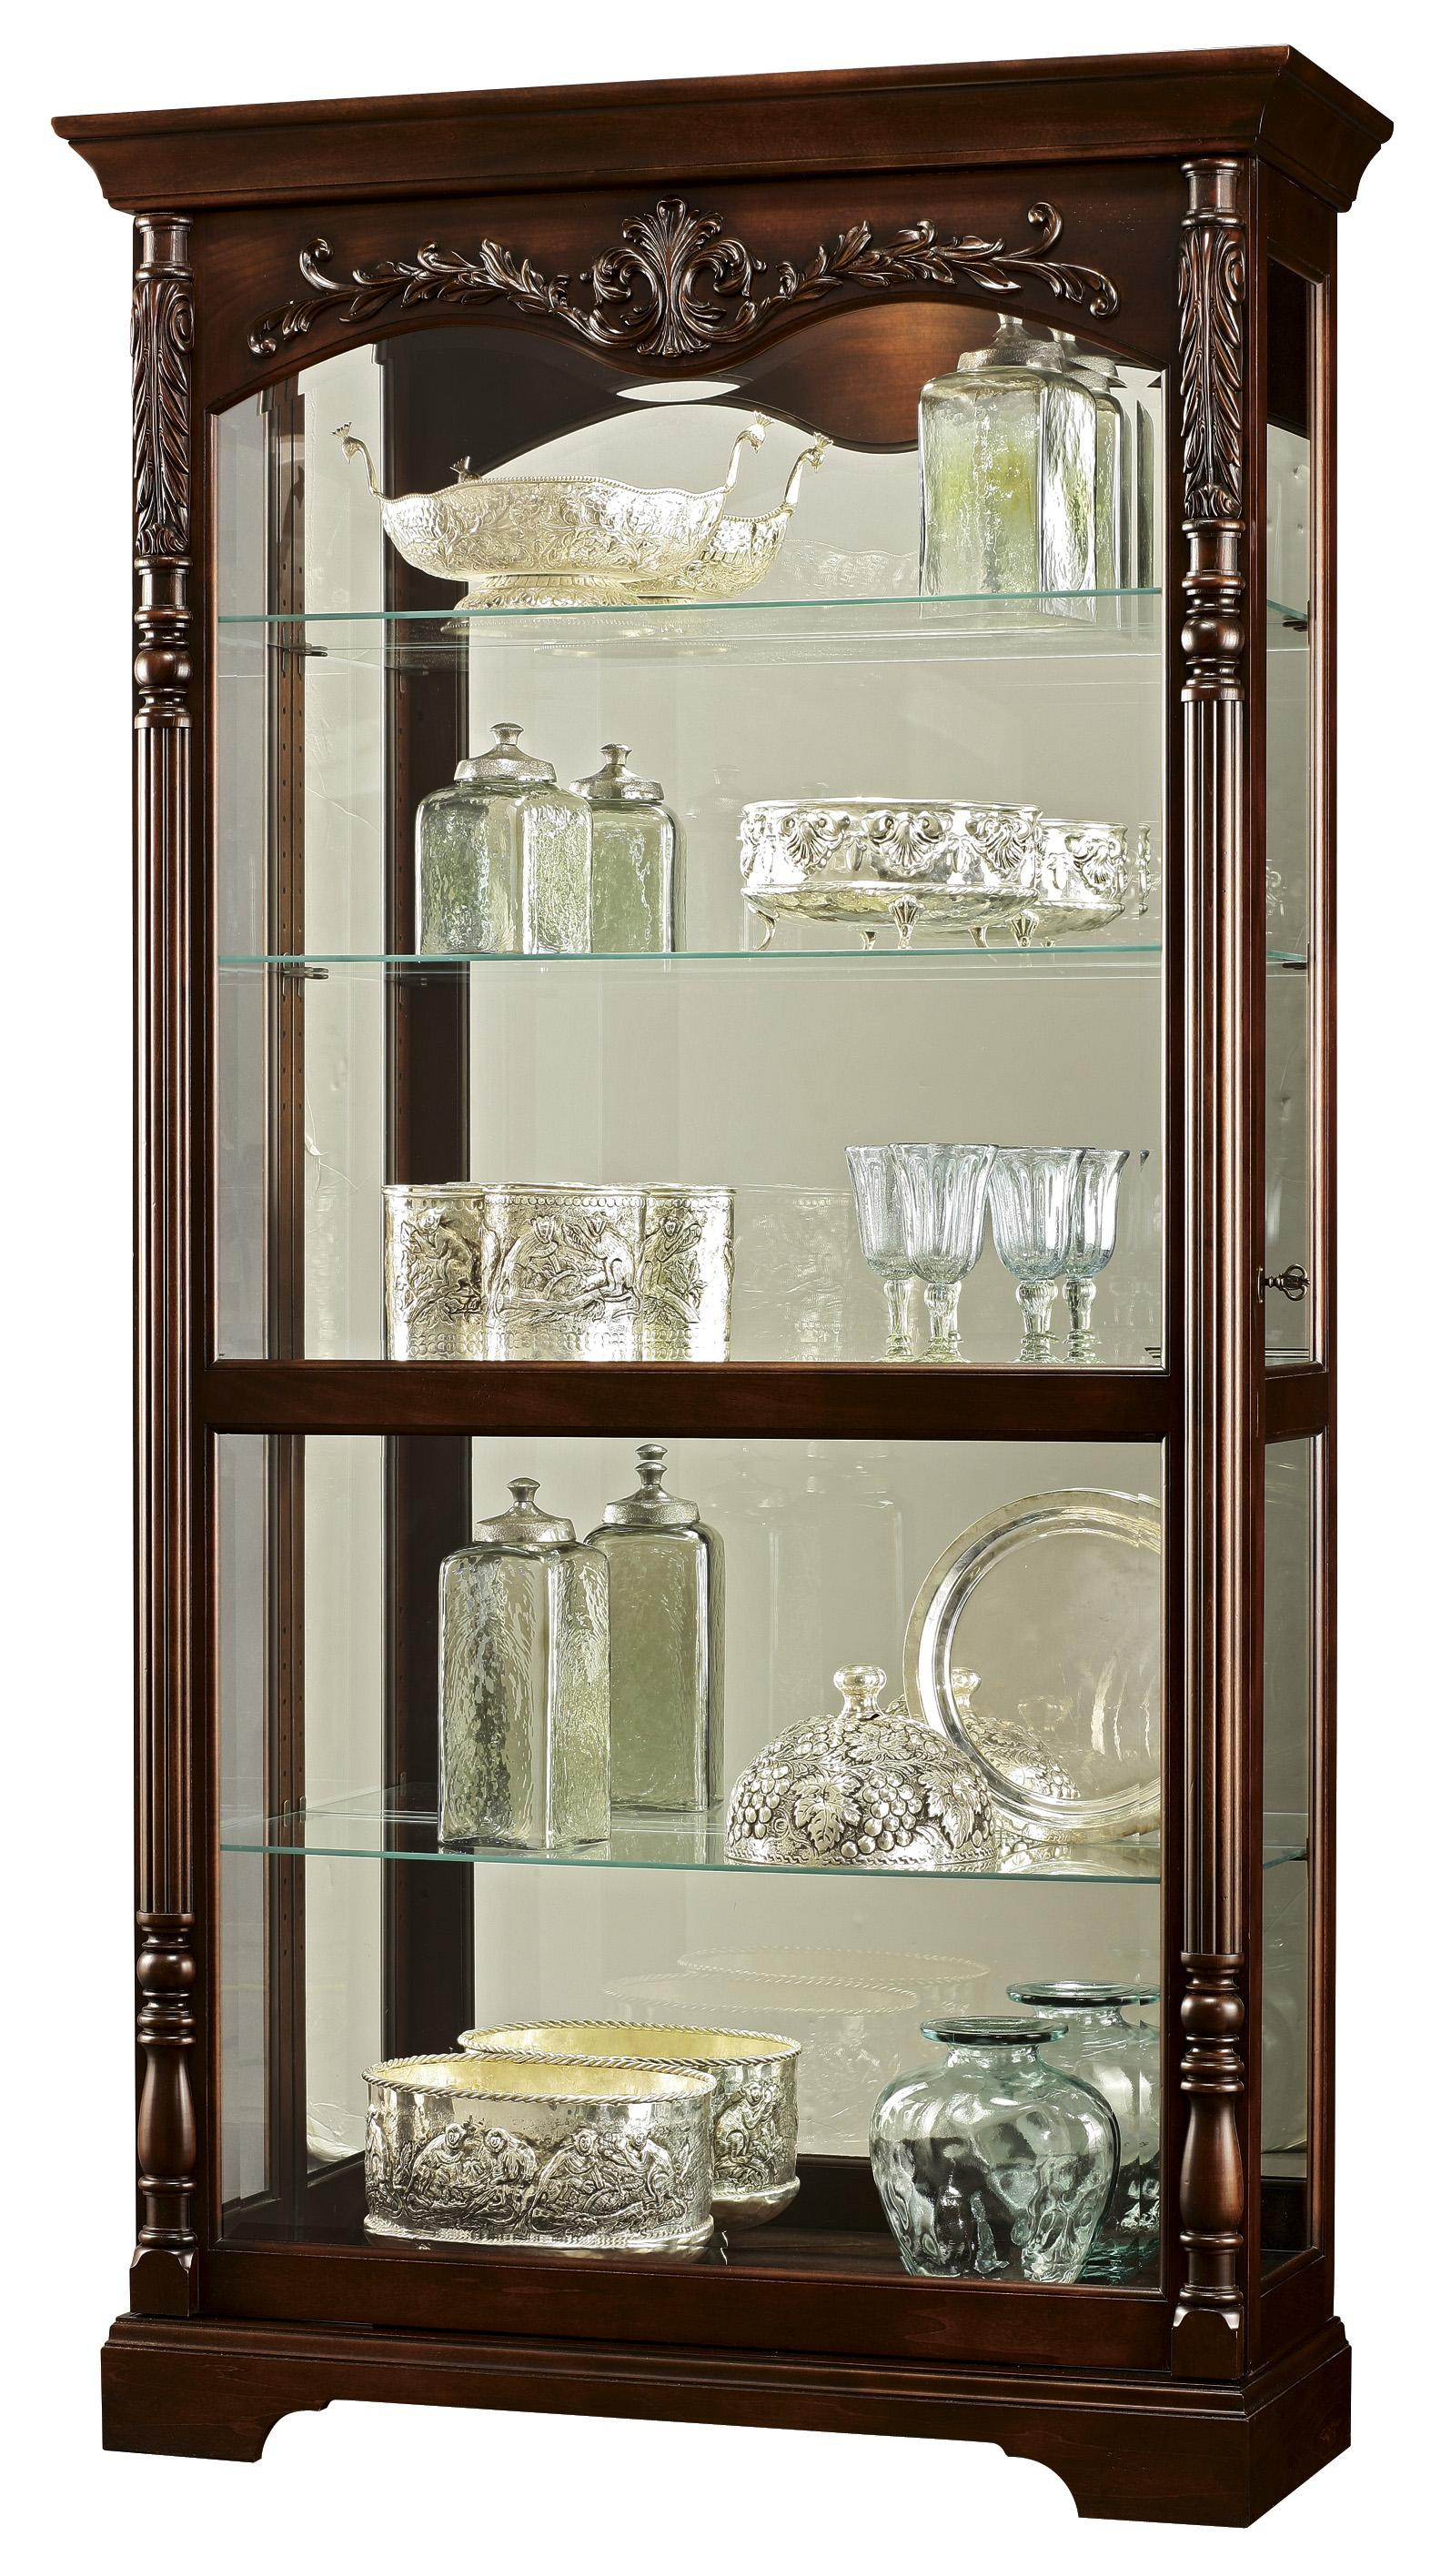 Howard Miller Furniture Trend Designs Curios Felicia Display Cabinet - Item Number: 680-497